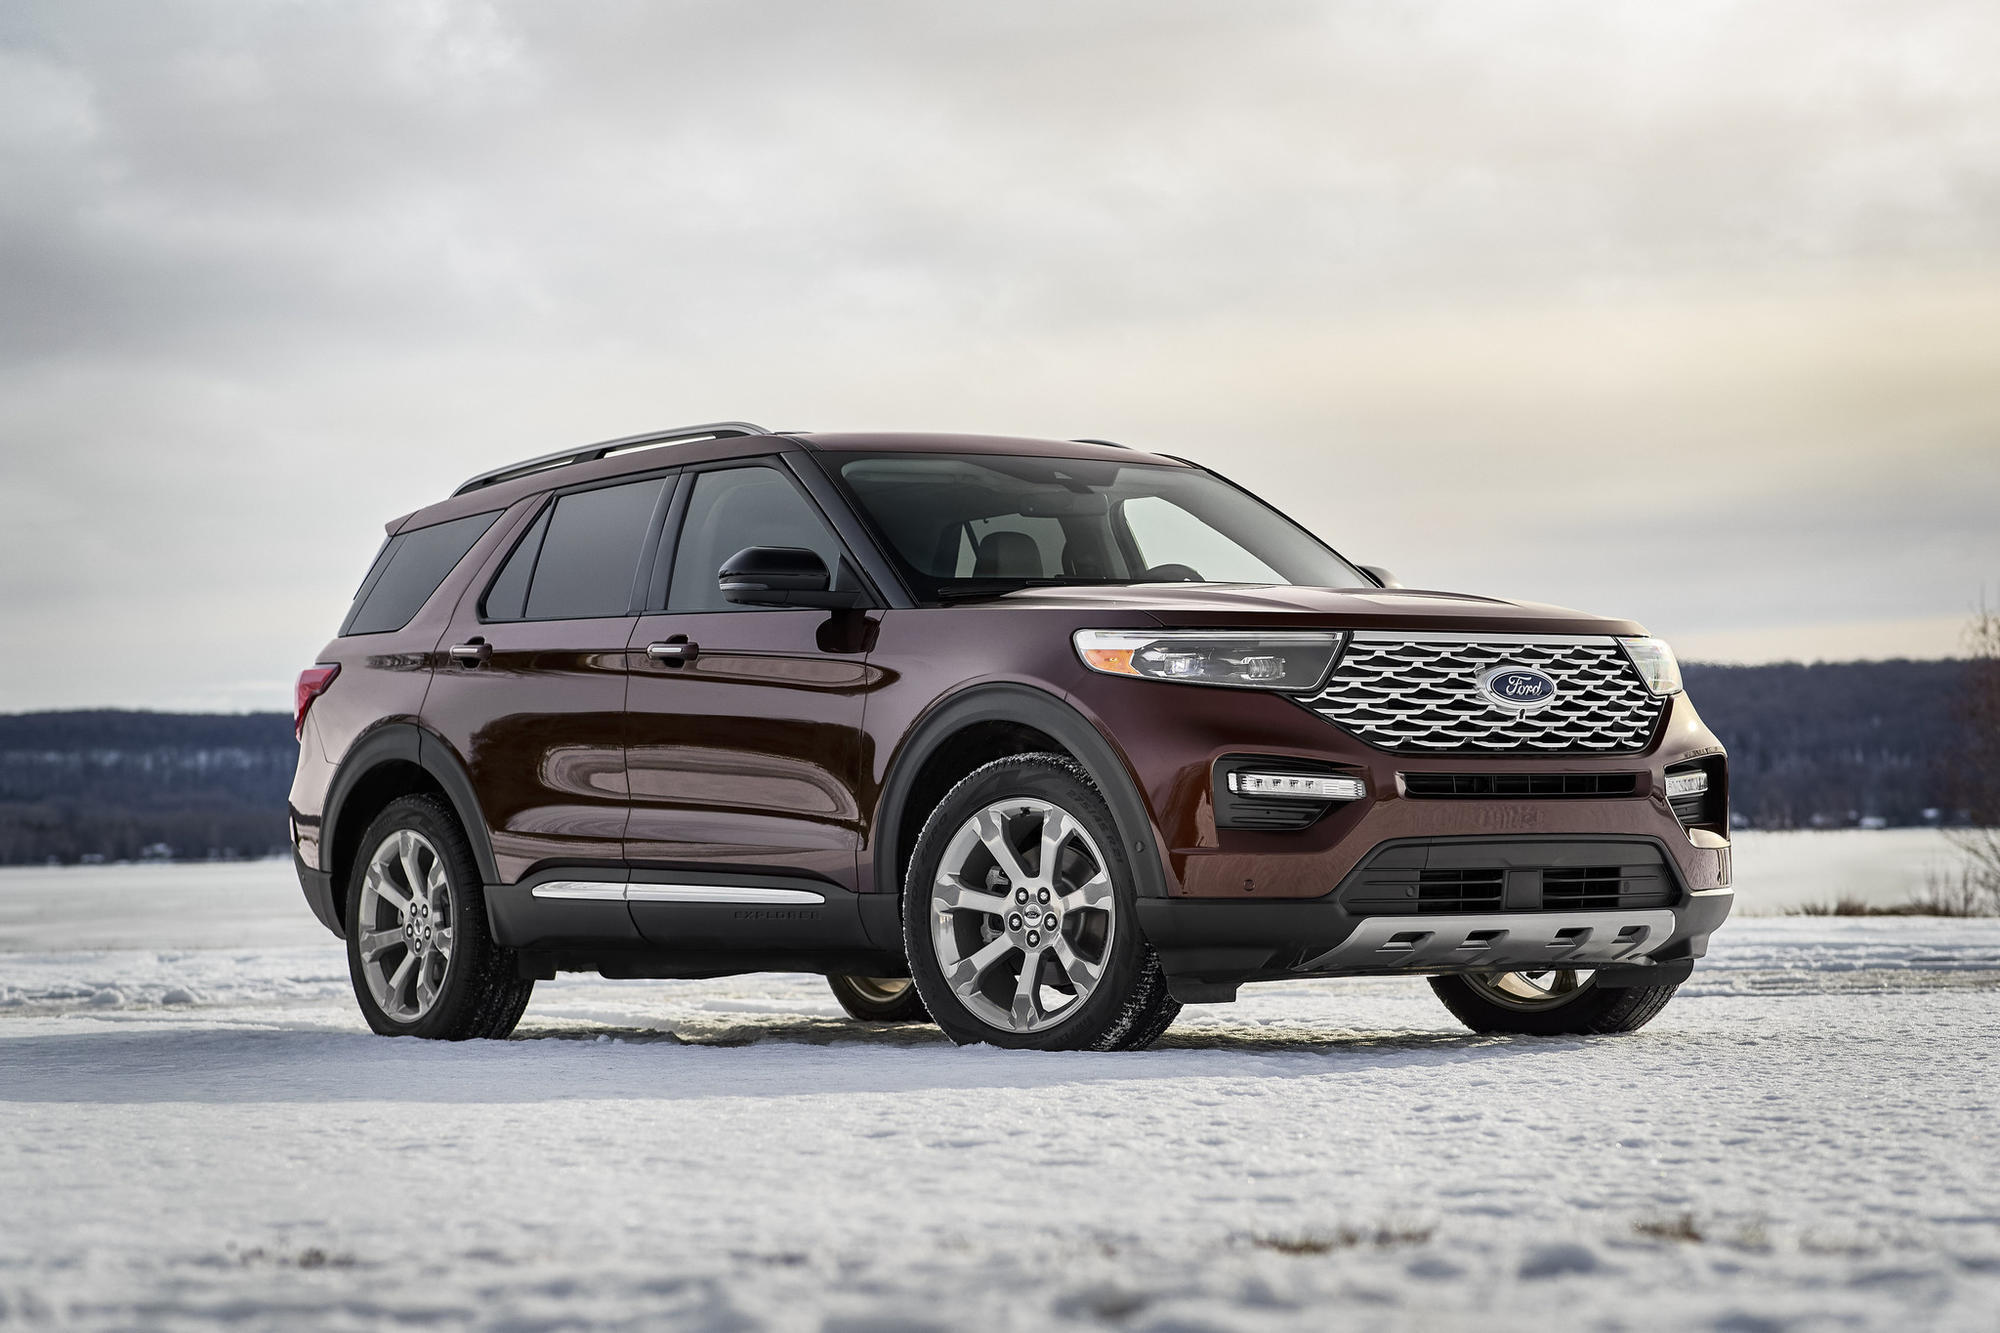 40 All New 2020 Ford Explorer Sports Concept